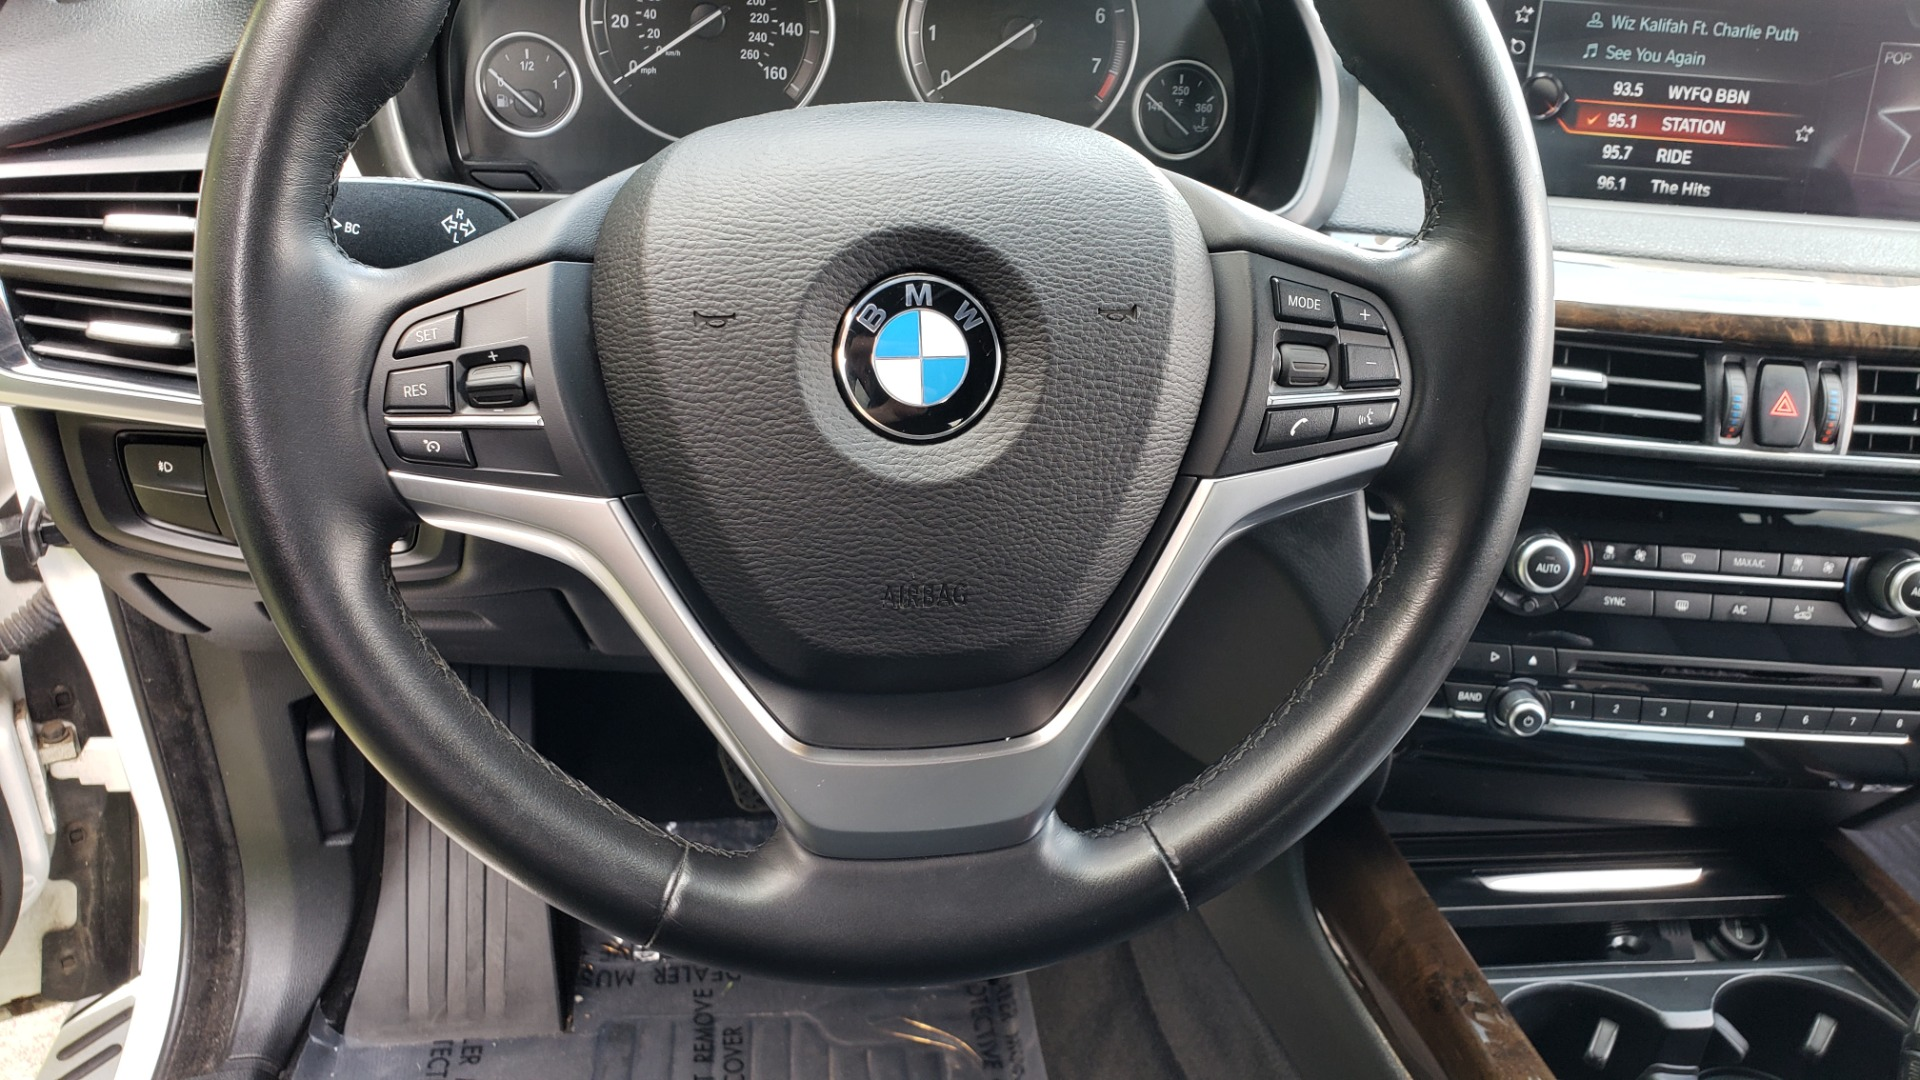 Used 2017 BMW X5 XDRIVE35I / NAV / SUNROOF / RUNNING BOARDS / REARVIEW for sale $33,995 at Formula Imports in Charlotte NC 28227 41